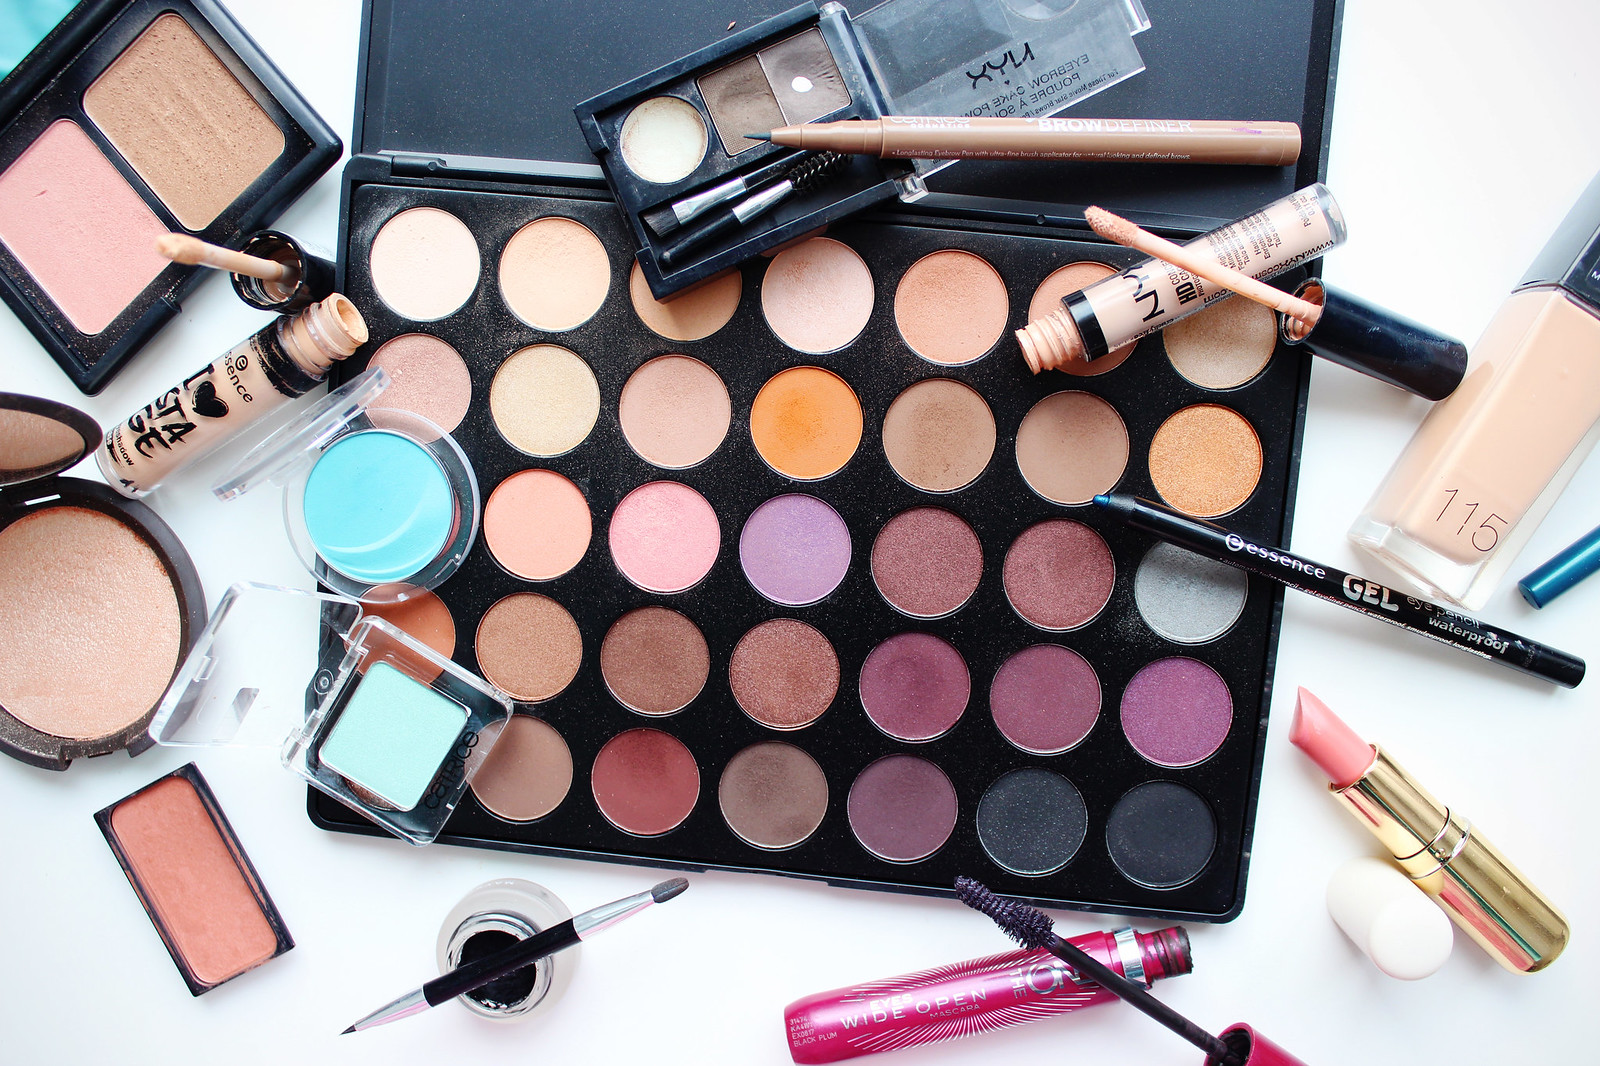 Morphe 35W eye shadow palette review